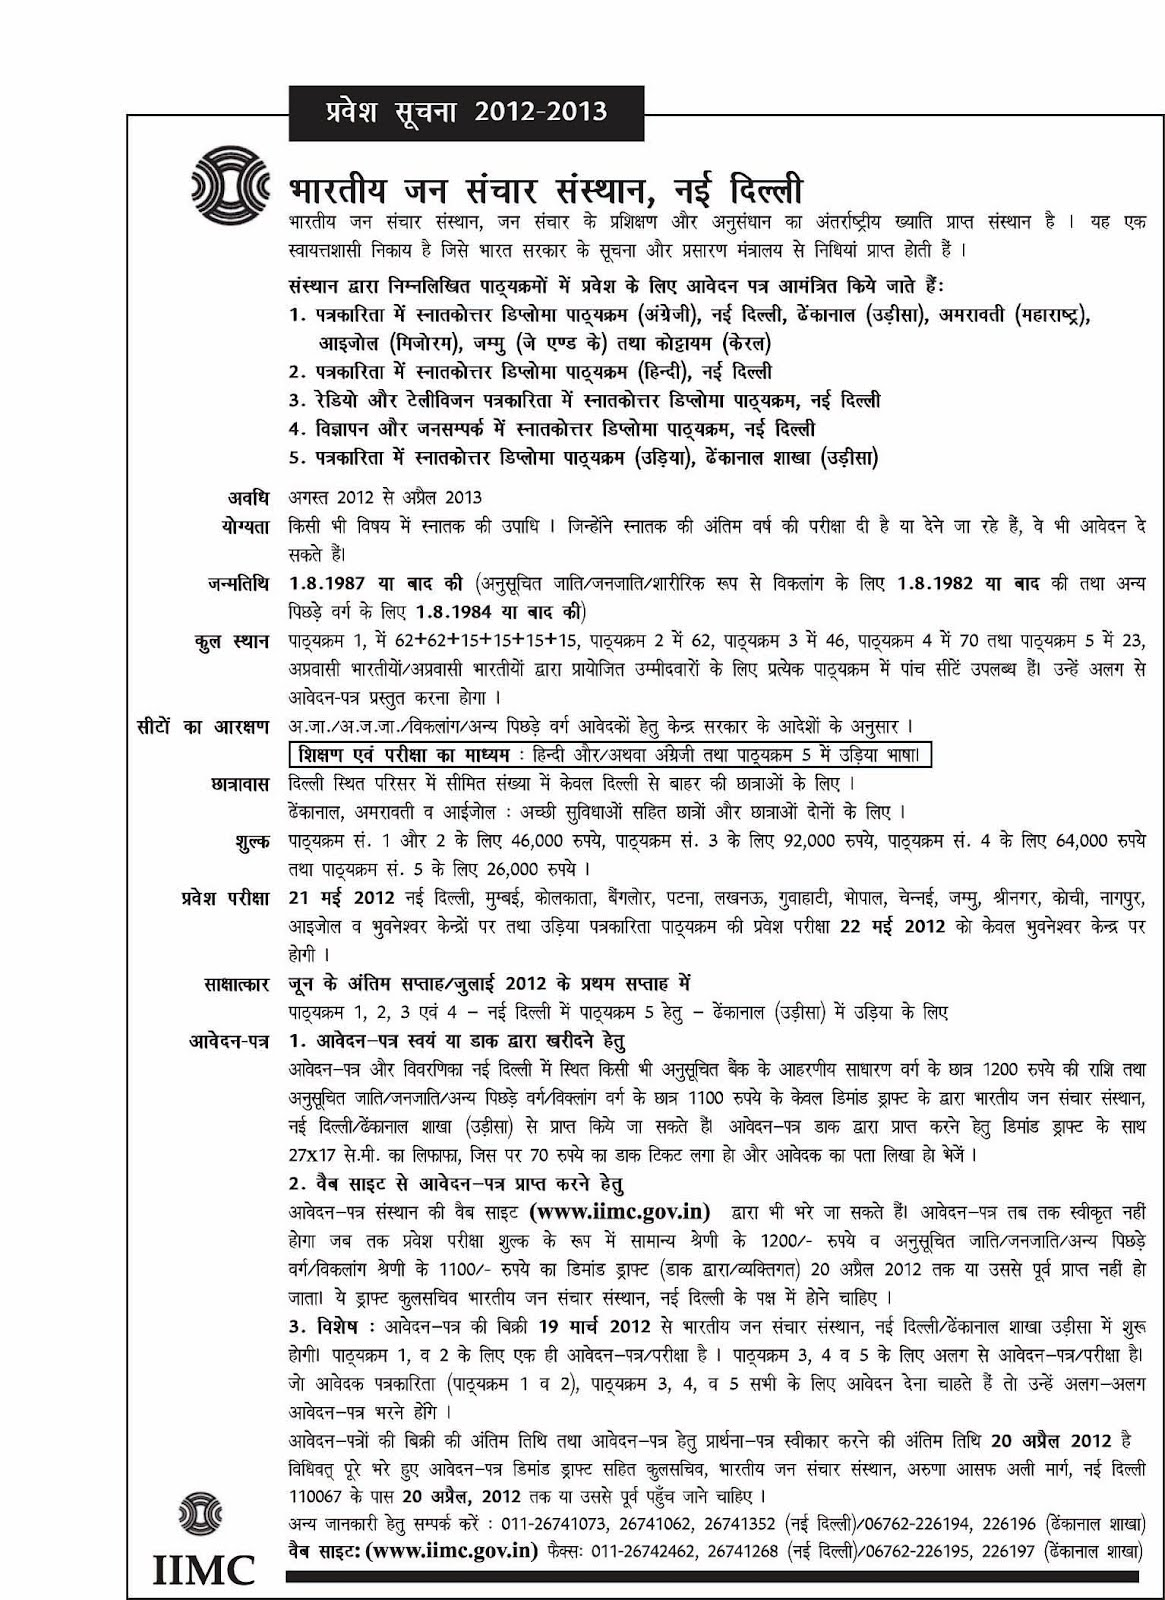 terrorism essay writing essay on paper research paper on movie  buy original essays online essay on terrorism in hindi language buy original essays online essay on